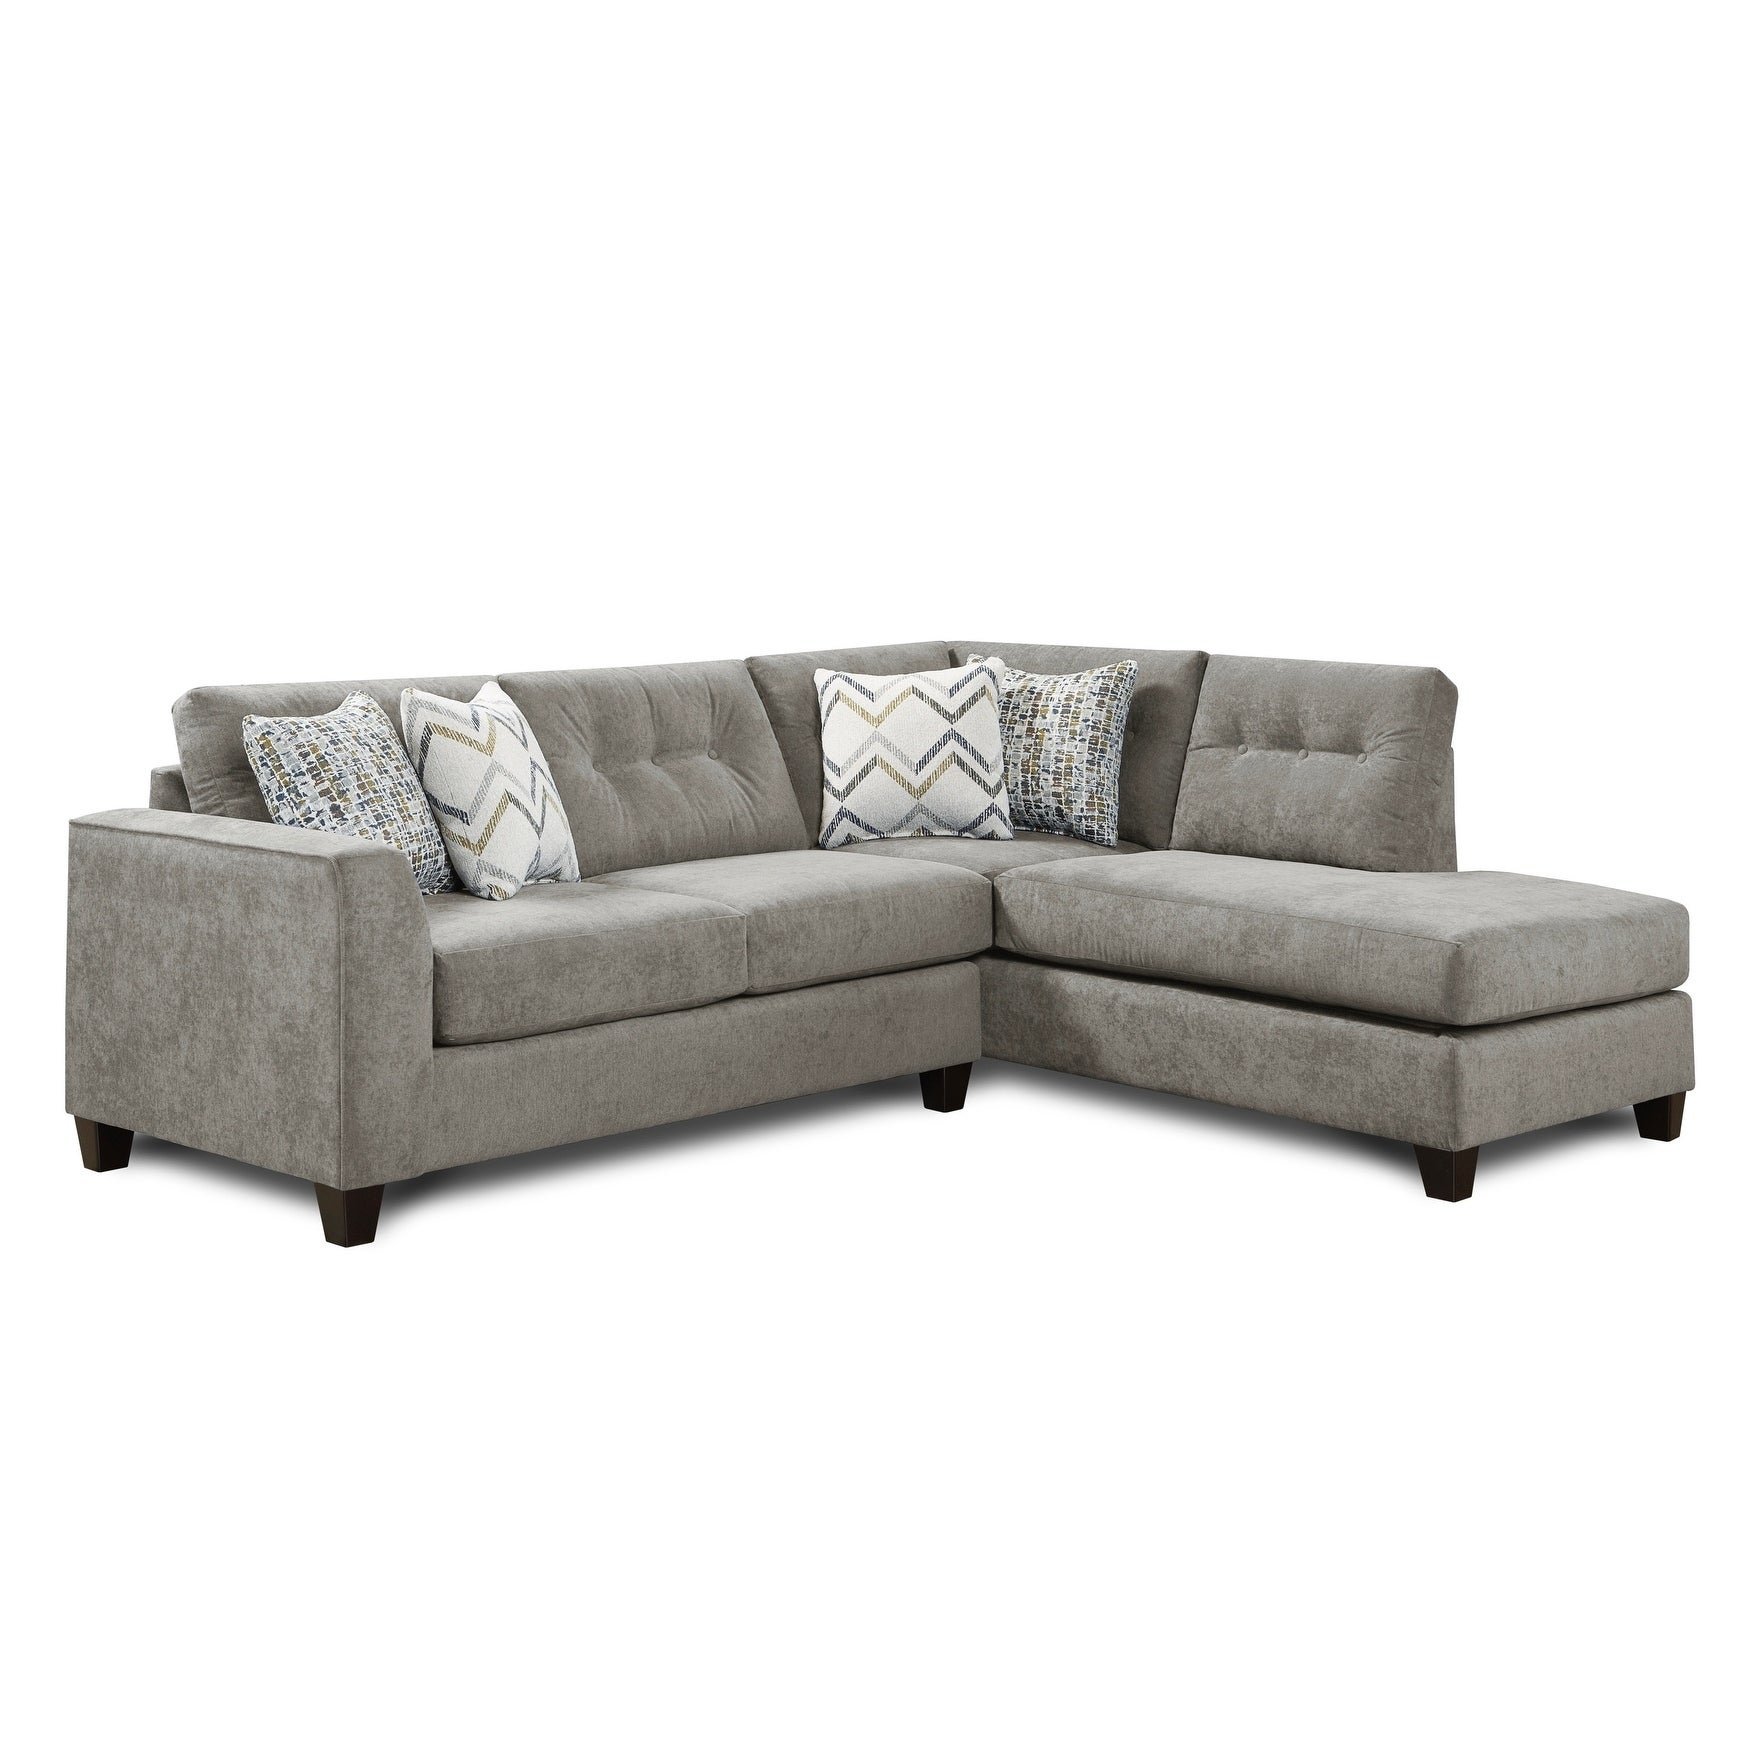 Superb Sensation Vintage Grey Chaise Sofa Onthecornerstone Fun Painted Chair Ideas Images Onthecornerstoneorg